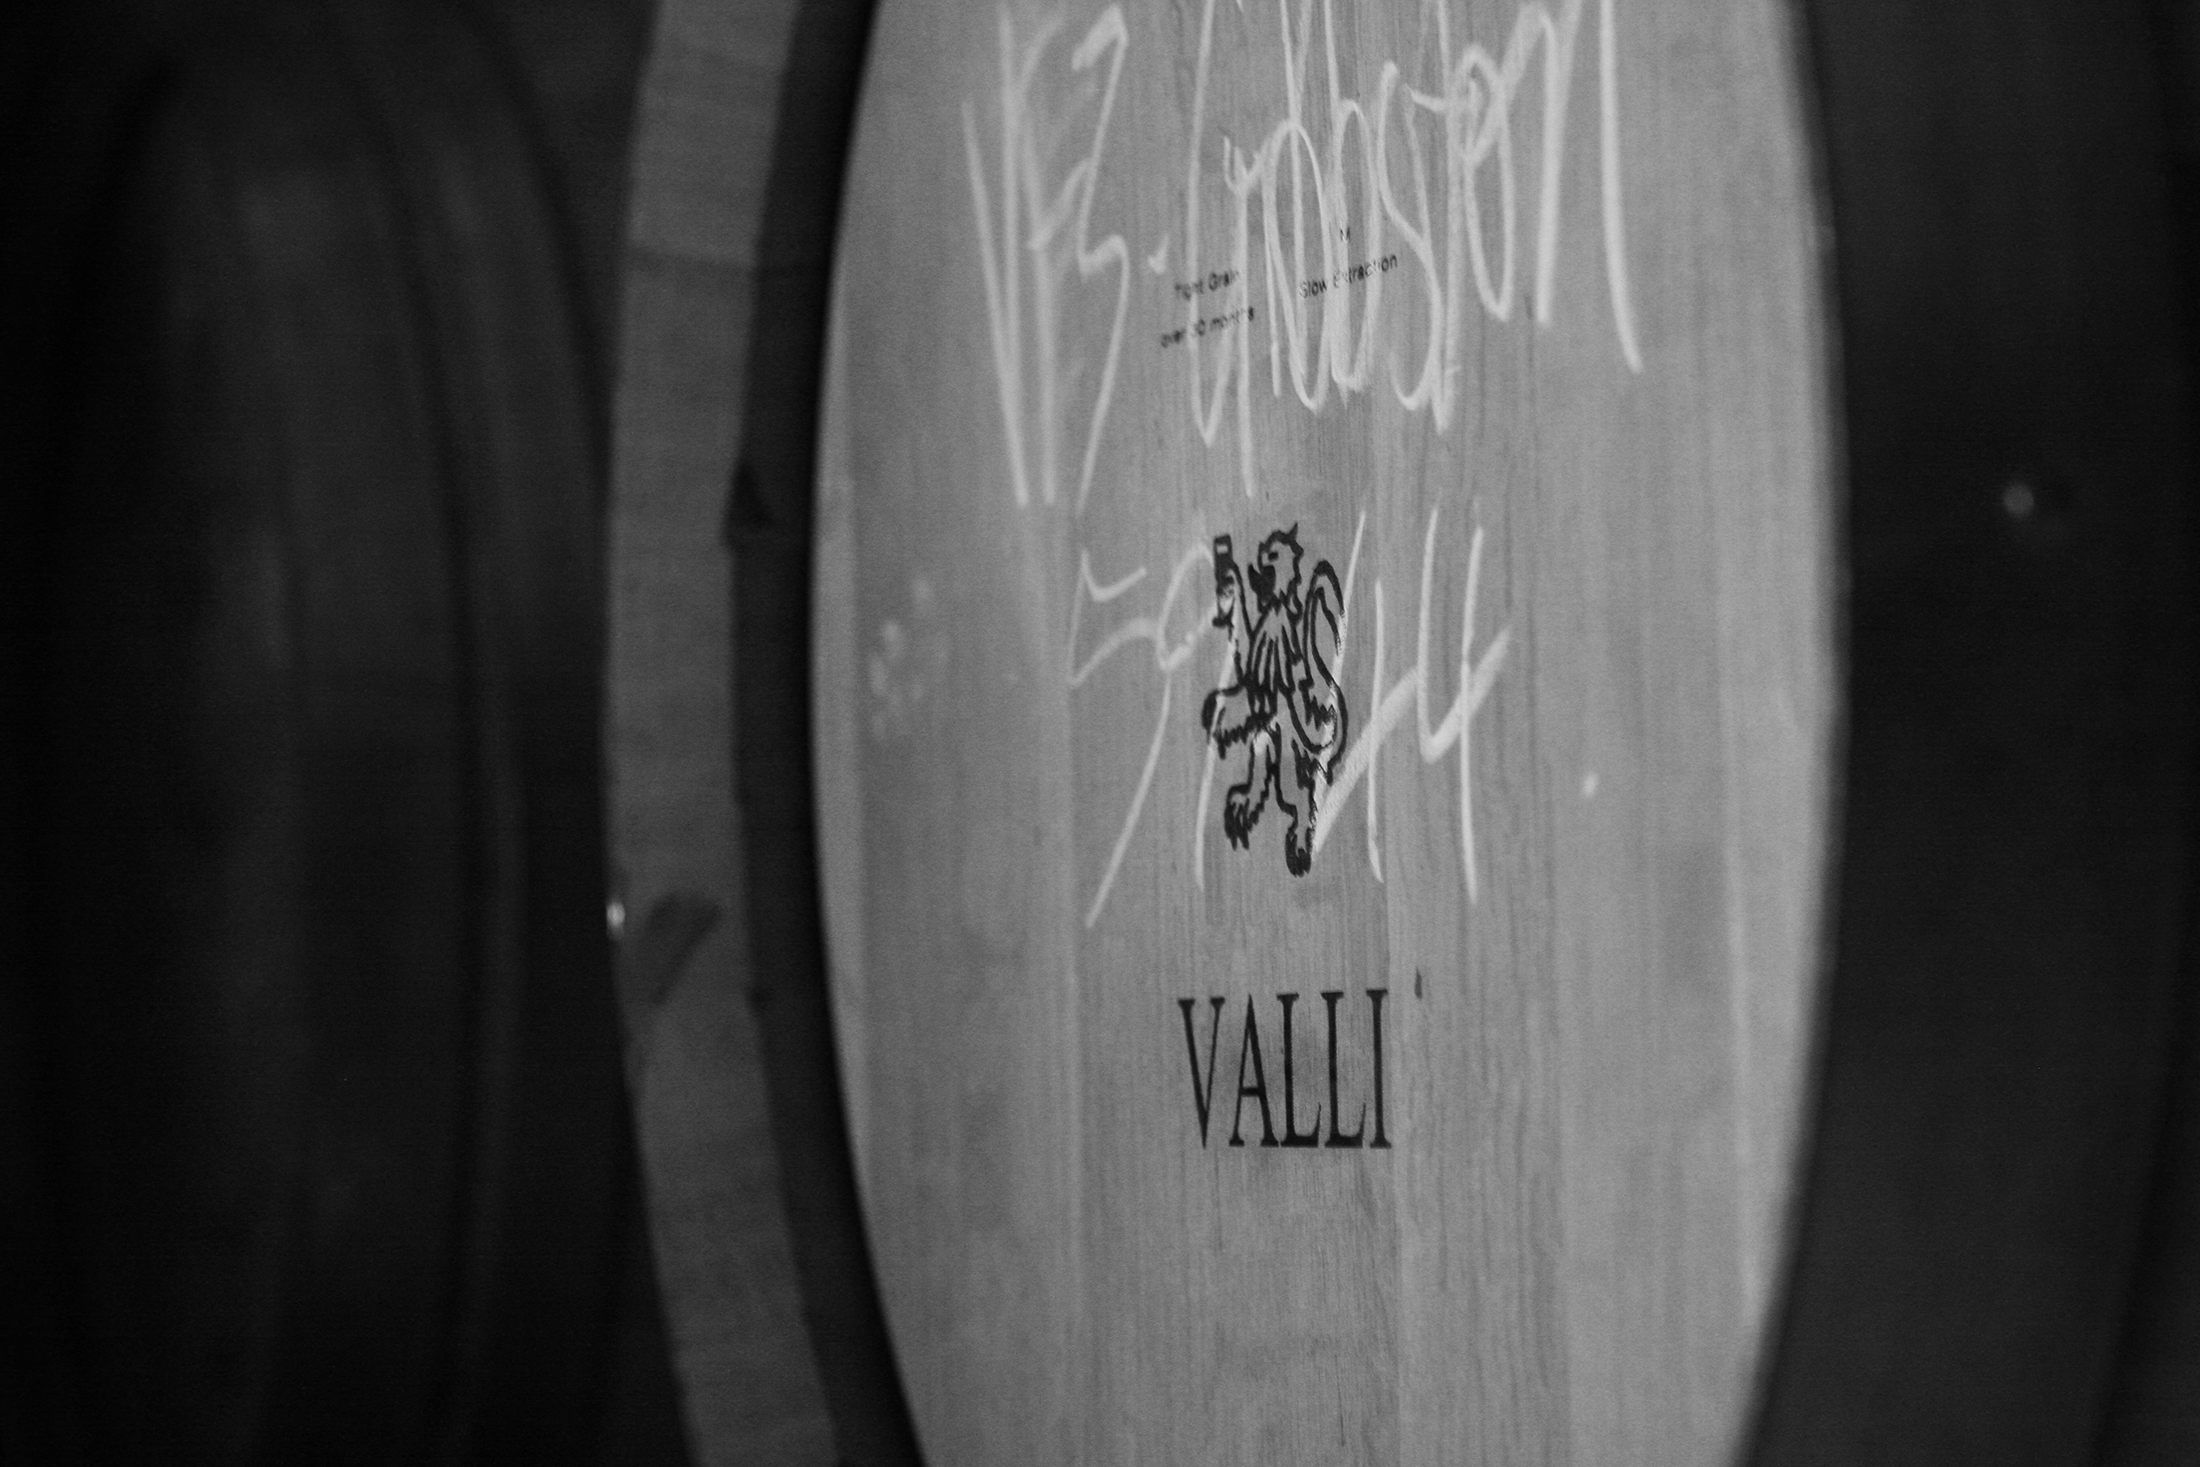 Valli Barrel